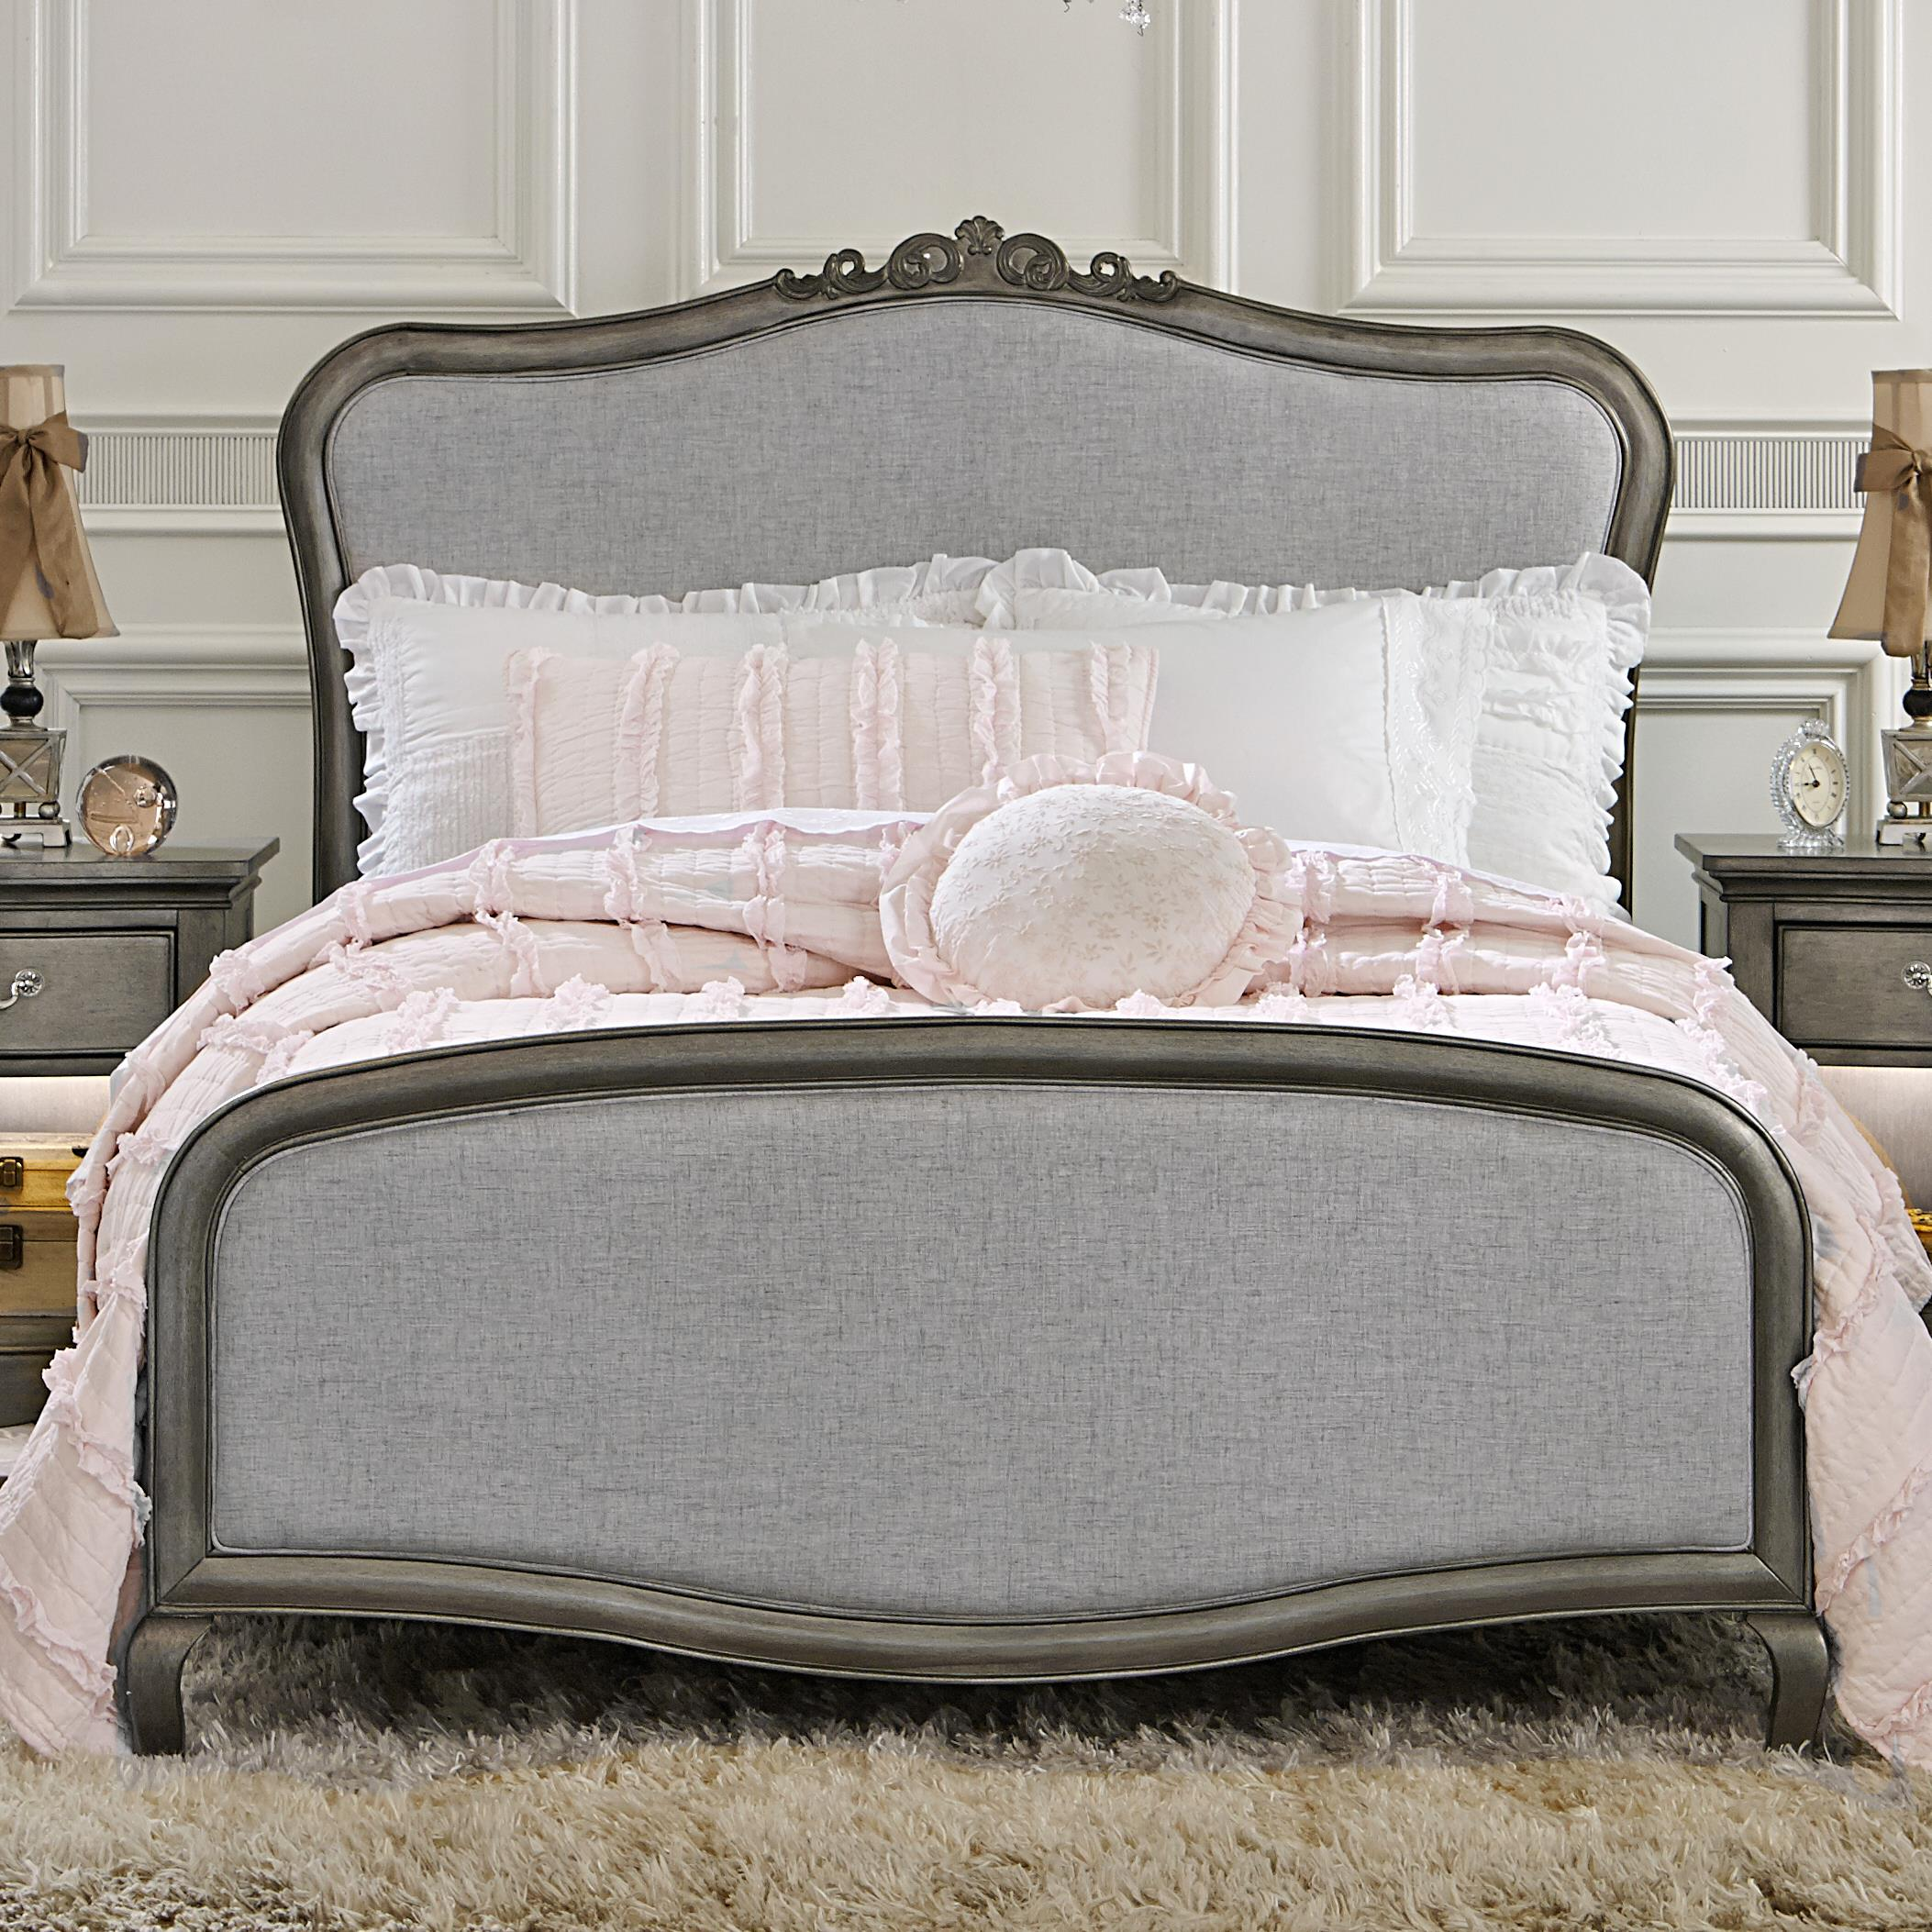 Kensington Full Katherine Bed by NE Kids at Stoney Creek Furniture